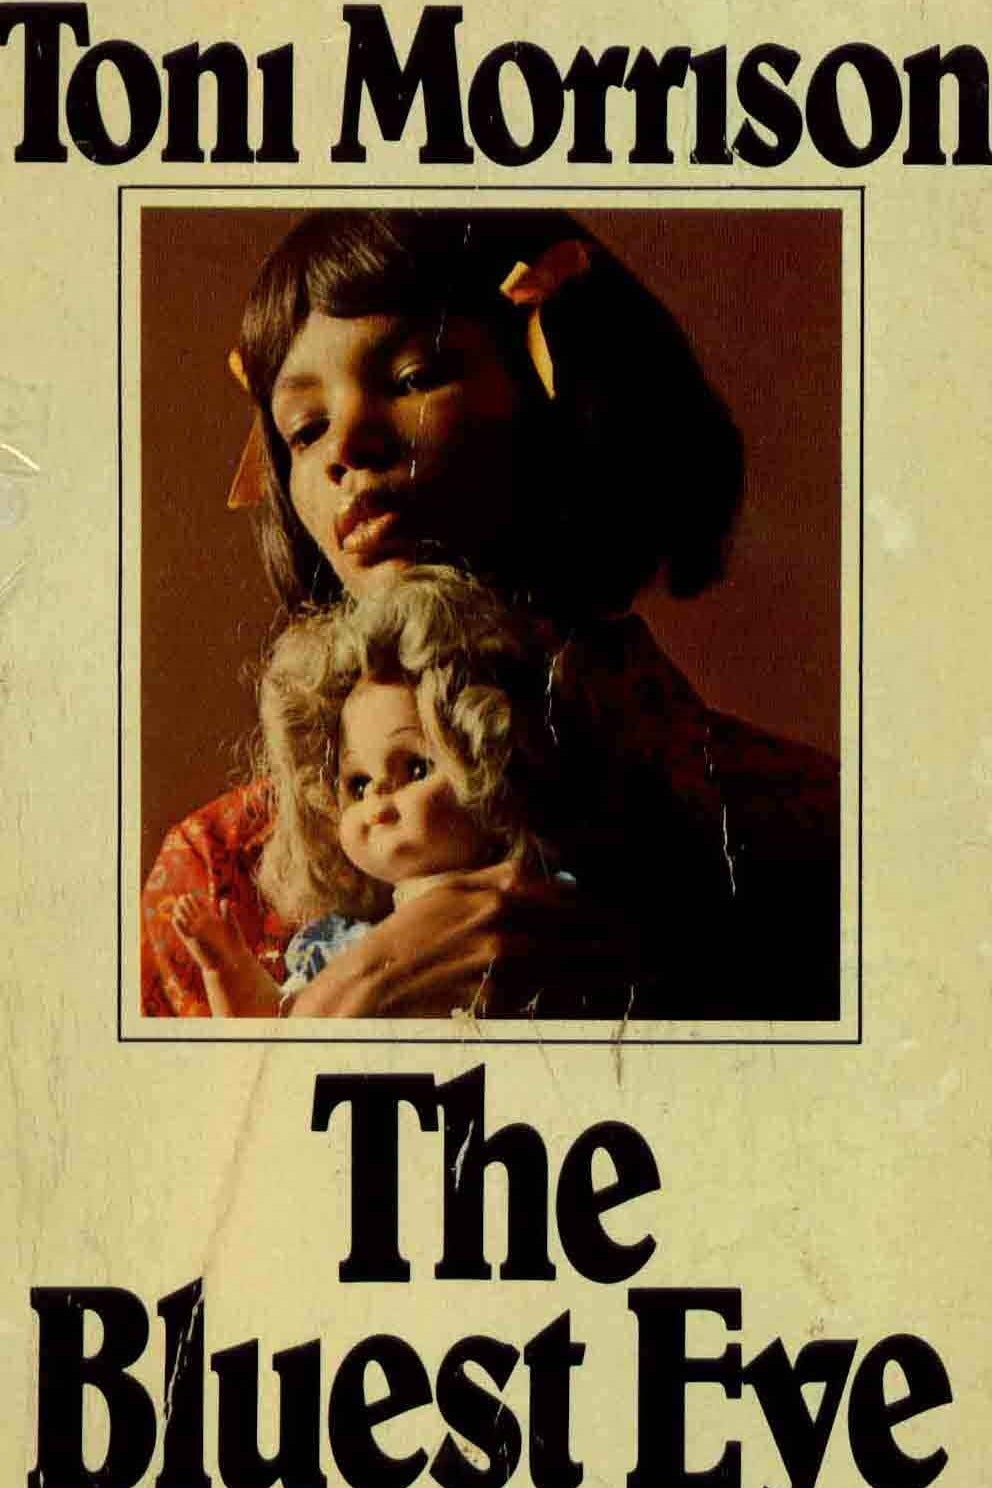 the bluest eye essays on racism Actions and reactions toni morrison, author of the bluest eye, writes about a young girl, pocola, who goes through a rough childhood experiencing abuse, being ignored, racism, and early and unwanted motherhood.